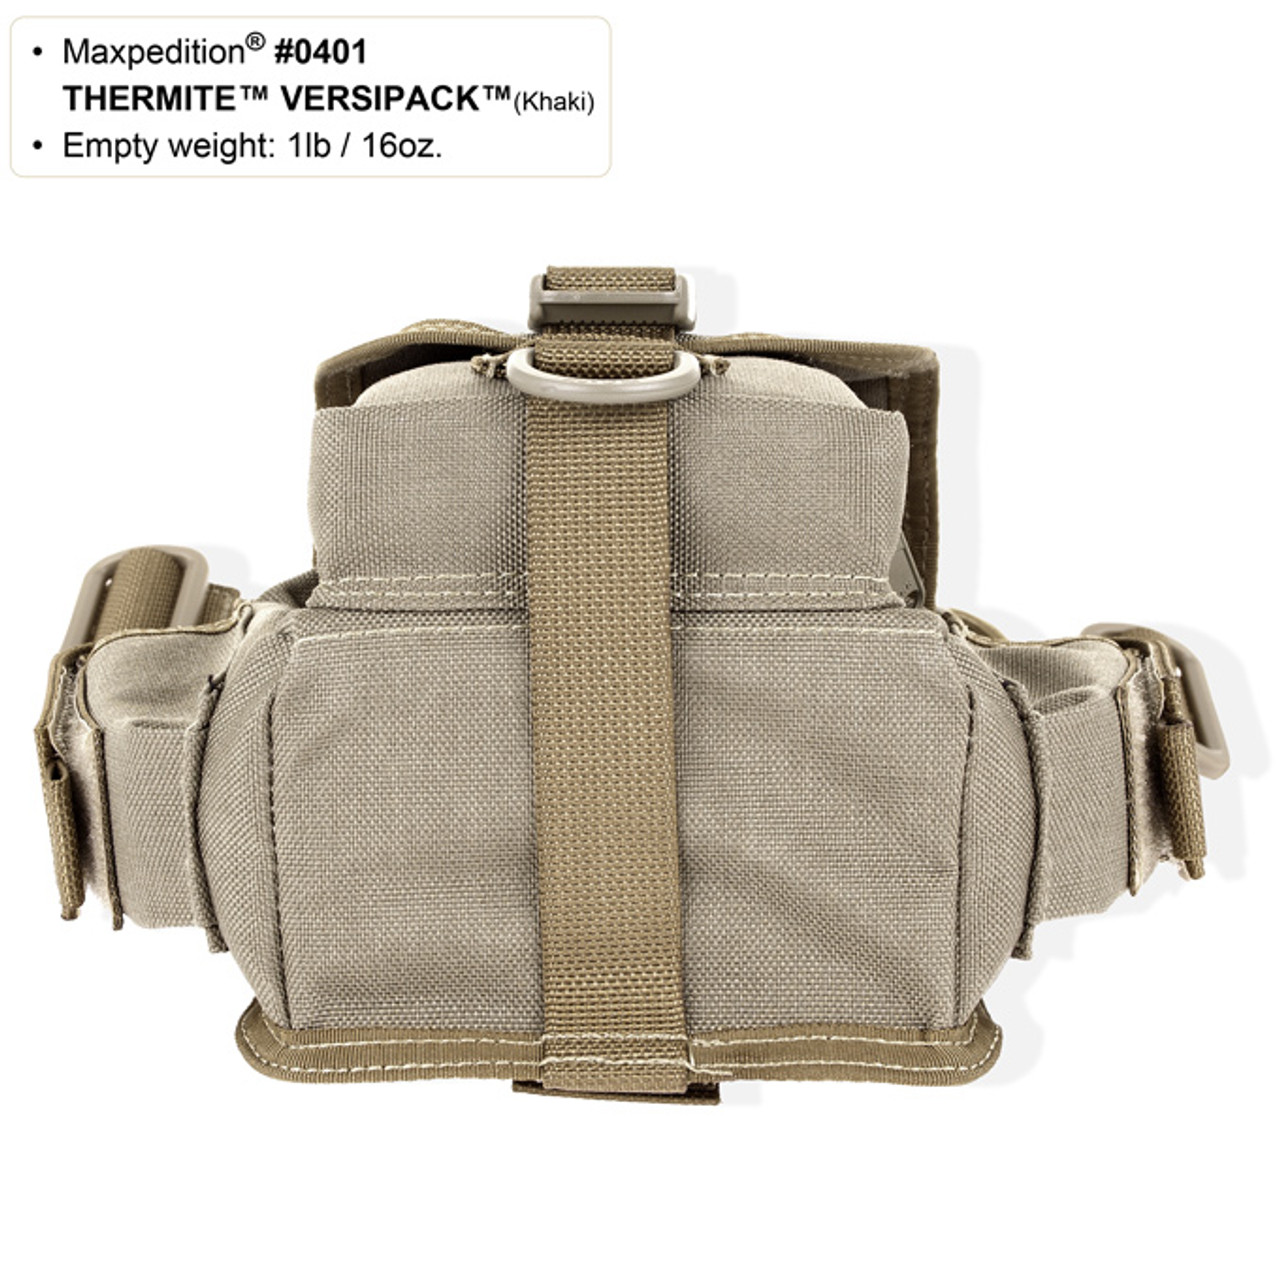 Maxpedition 0401 Thermite Versipack Various Colors